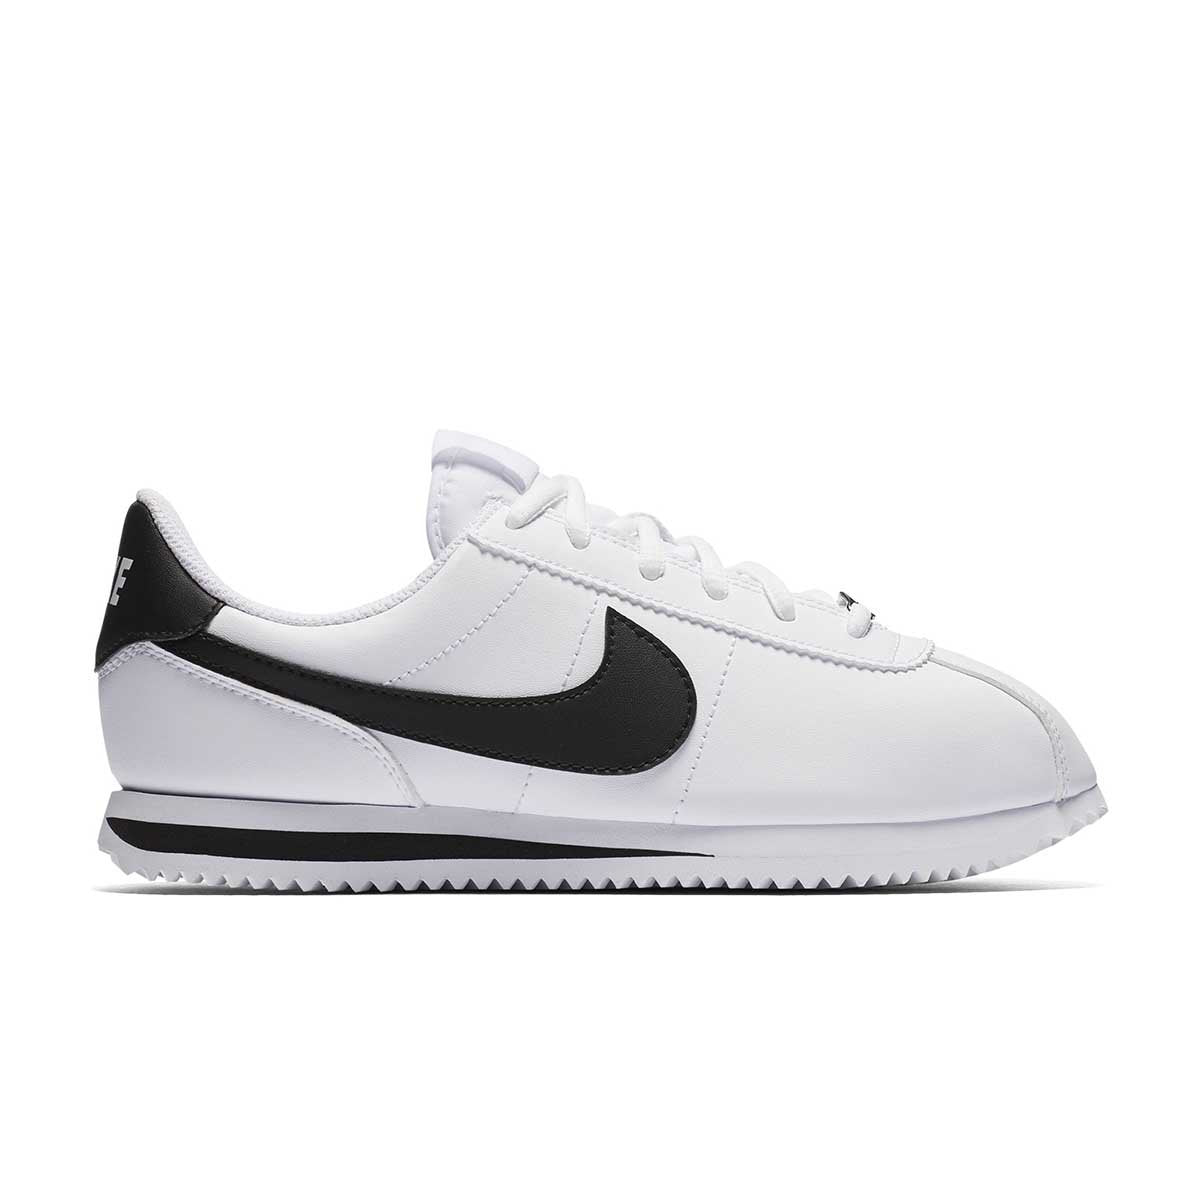 Big Kids Boys' Nike Cortez Basic SL